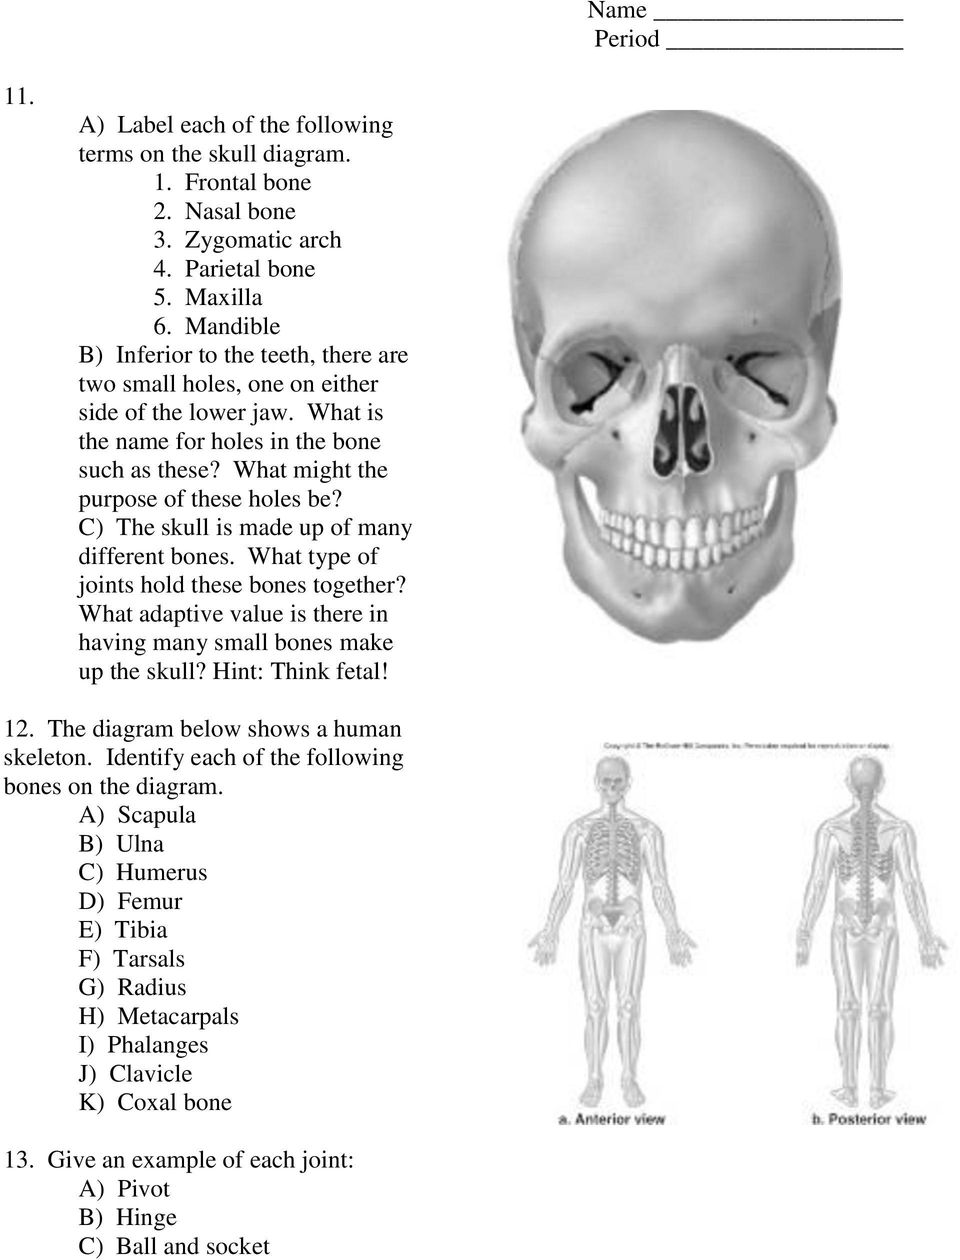 C) The skull is made up of many different bones. What type of joints hold these bones together? What adaptive value is there in having many small bones make up the skull? Hint: Think fetal! 12.